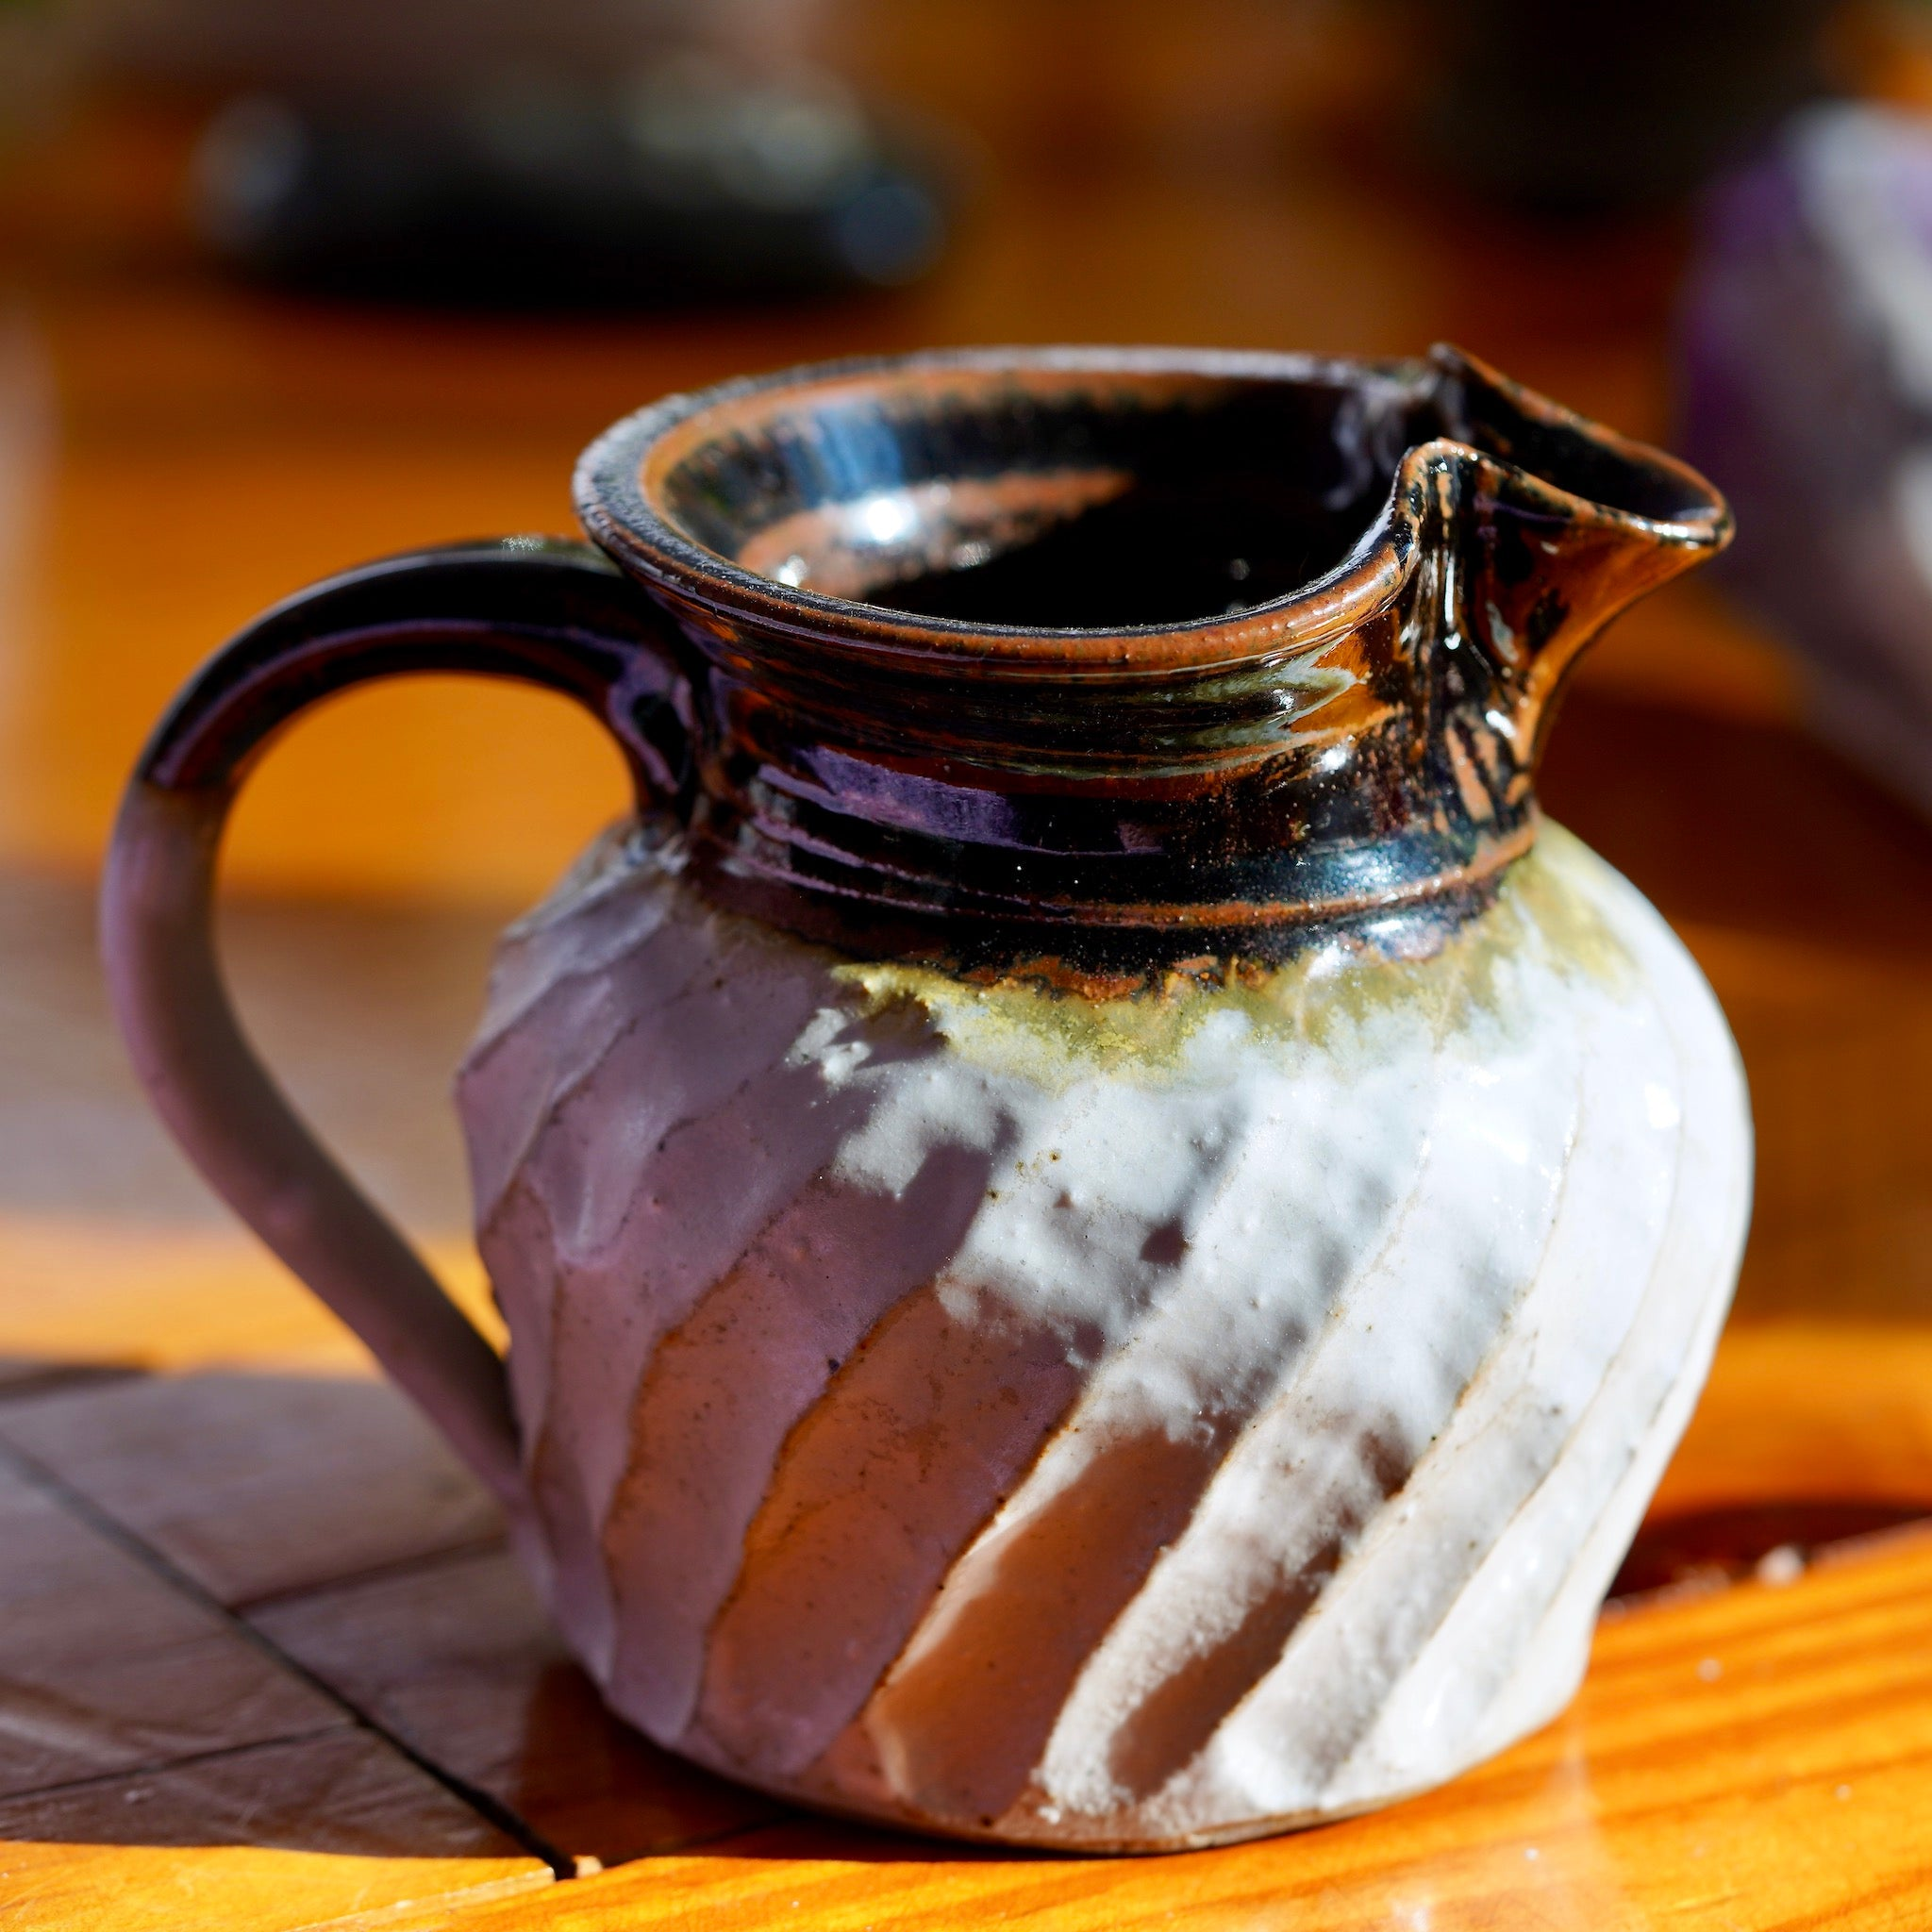 White and brown ceramic jug with handle and wavy pattern, sitting on wood floor and sunlit